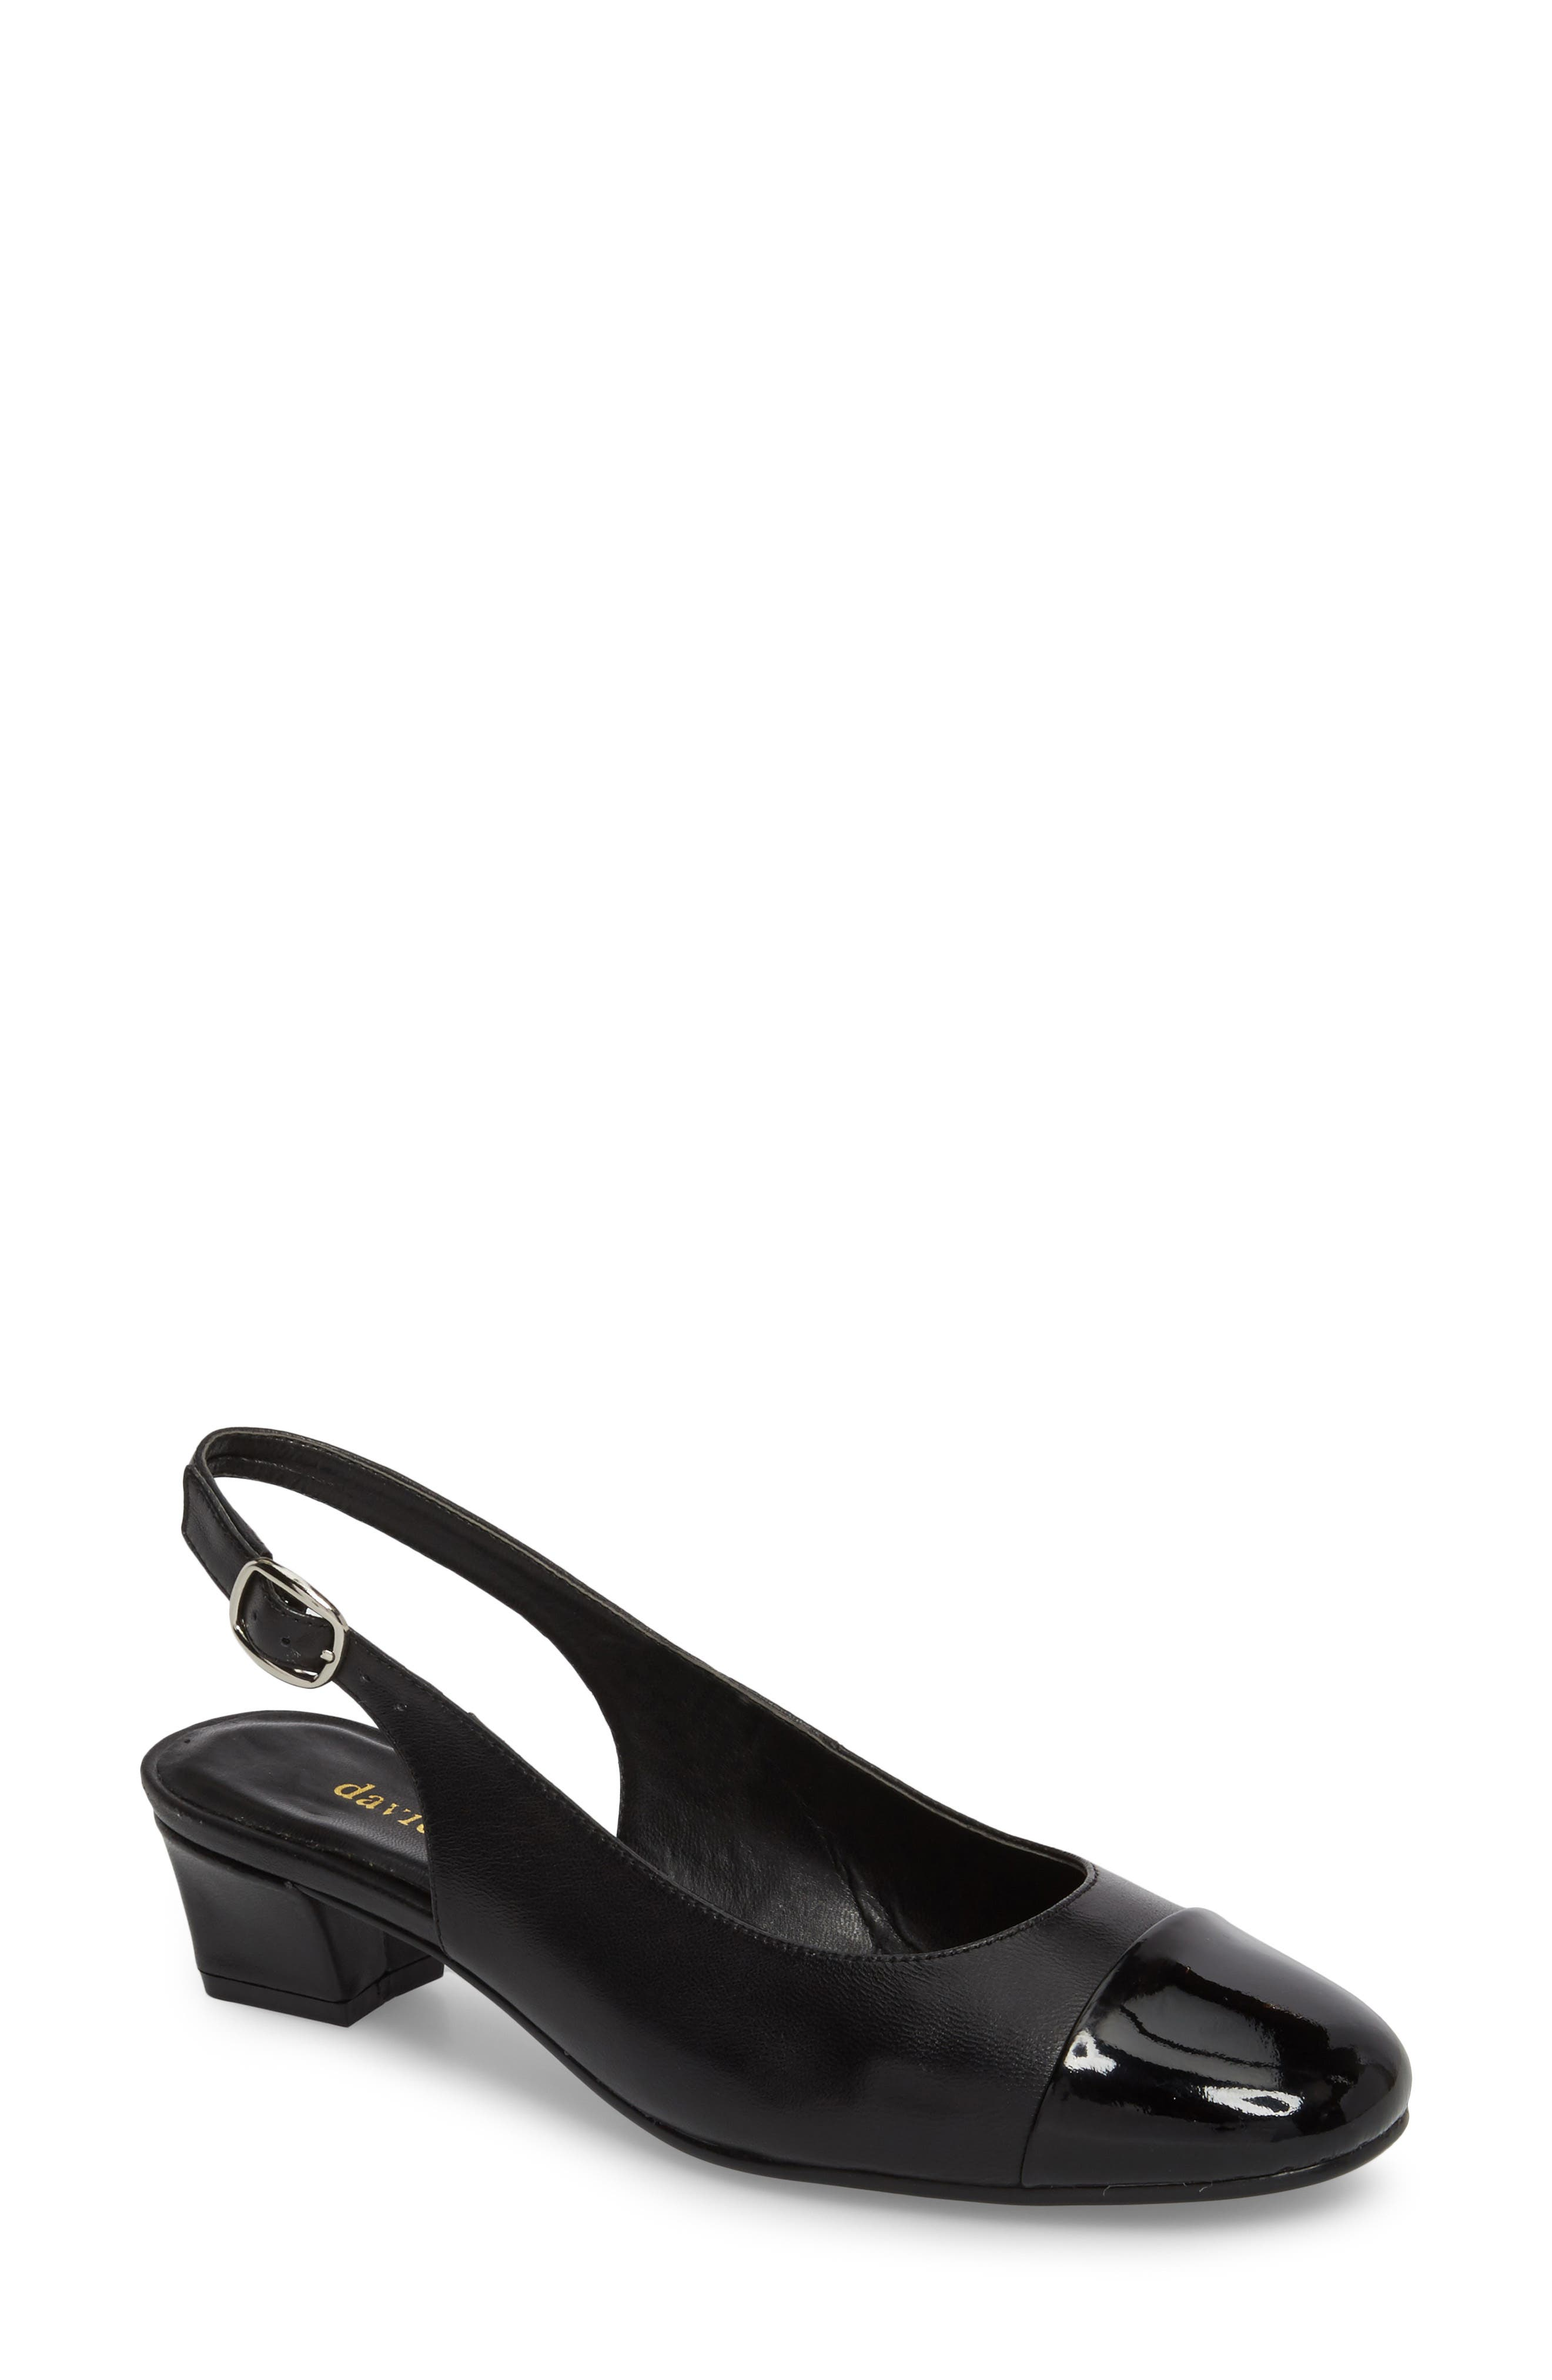 Glorious Slingback Pump,                         Main,                         color, Black Leather